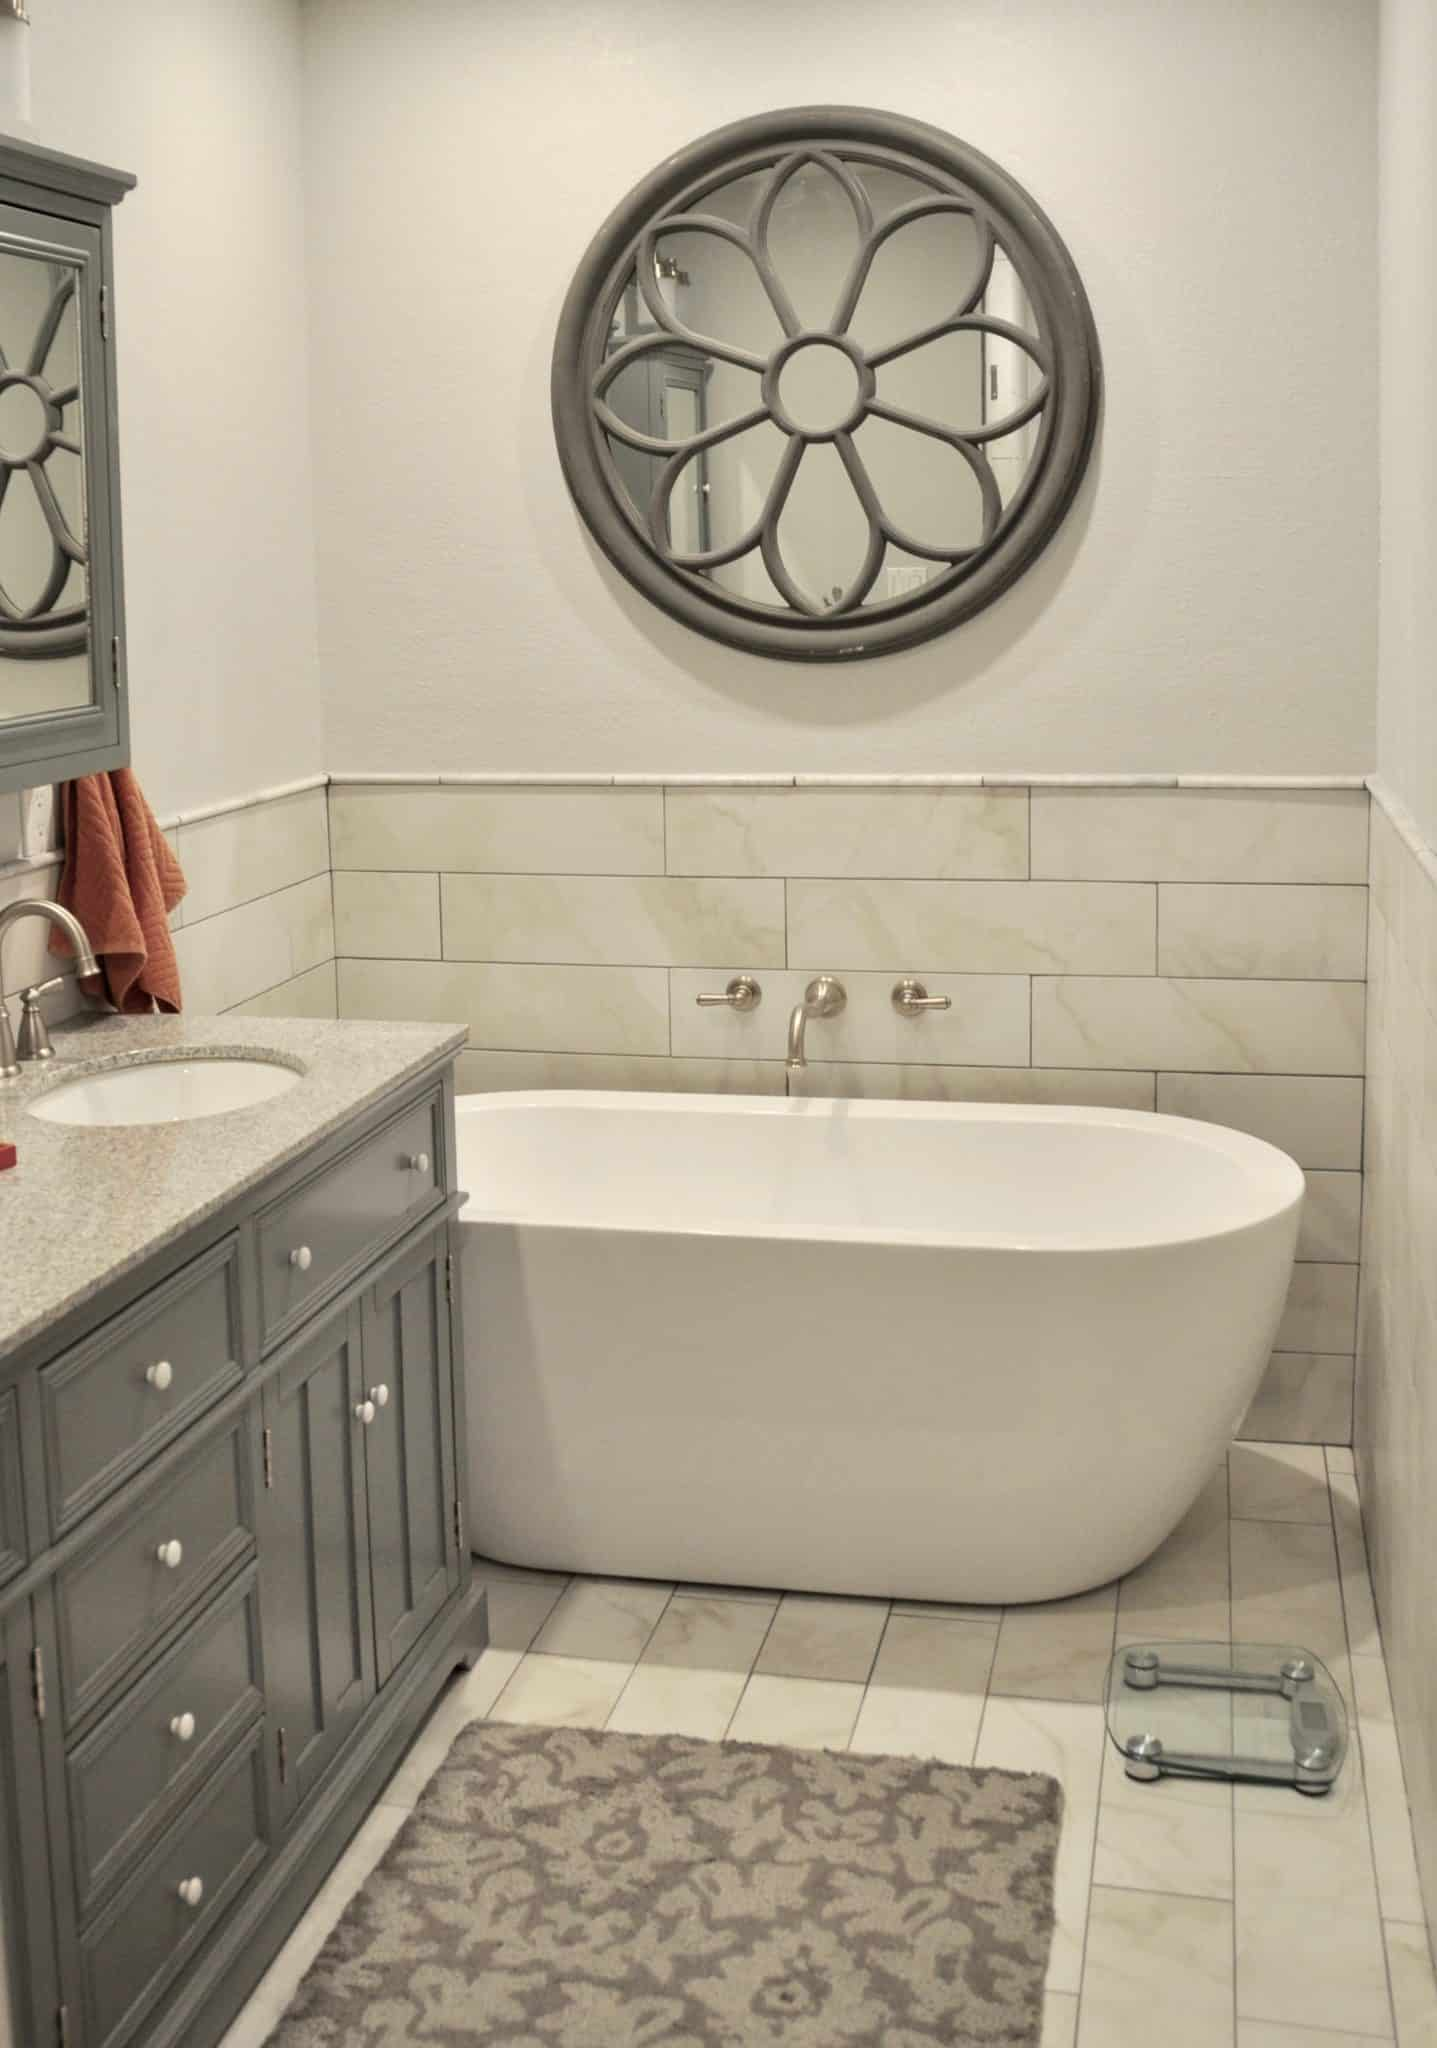 vanity and soaking tub bathroom remodel from Intentional Edit